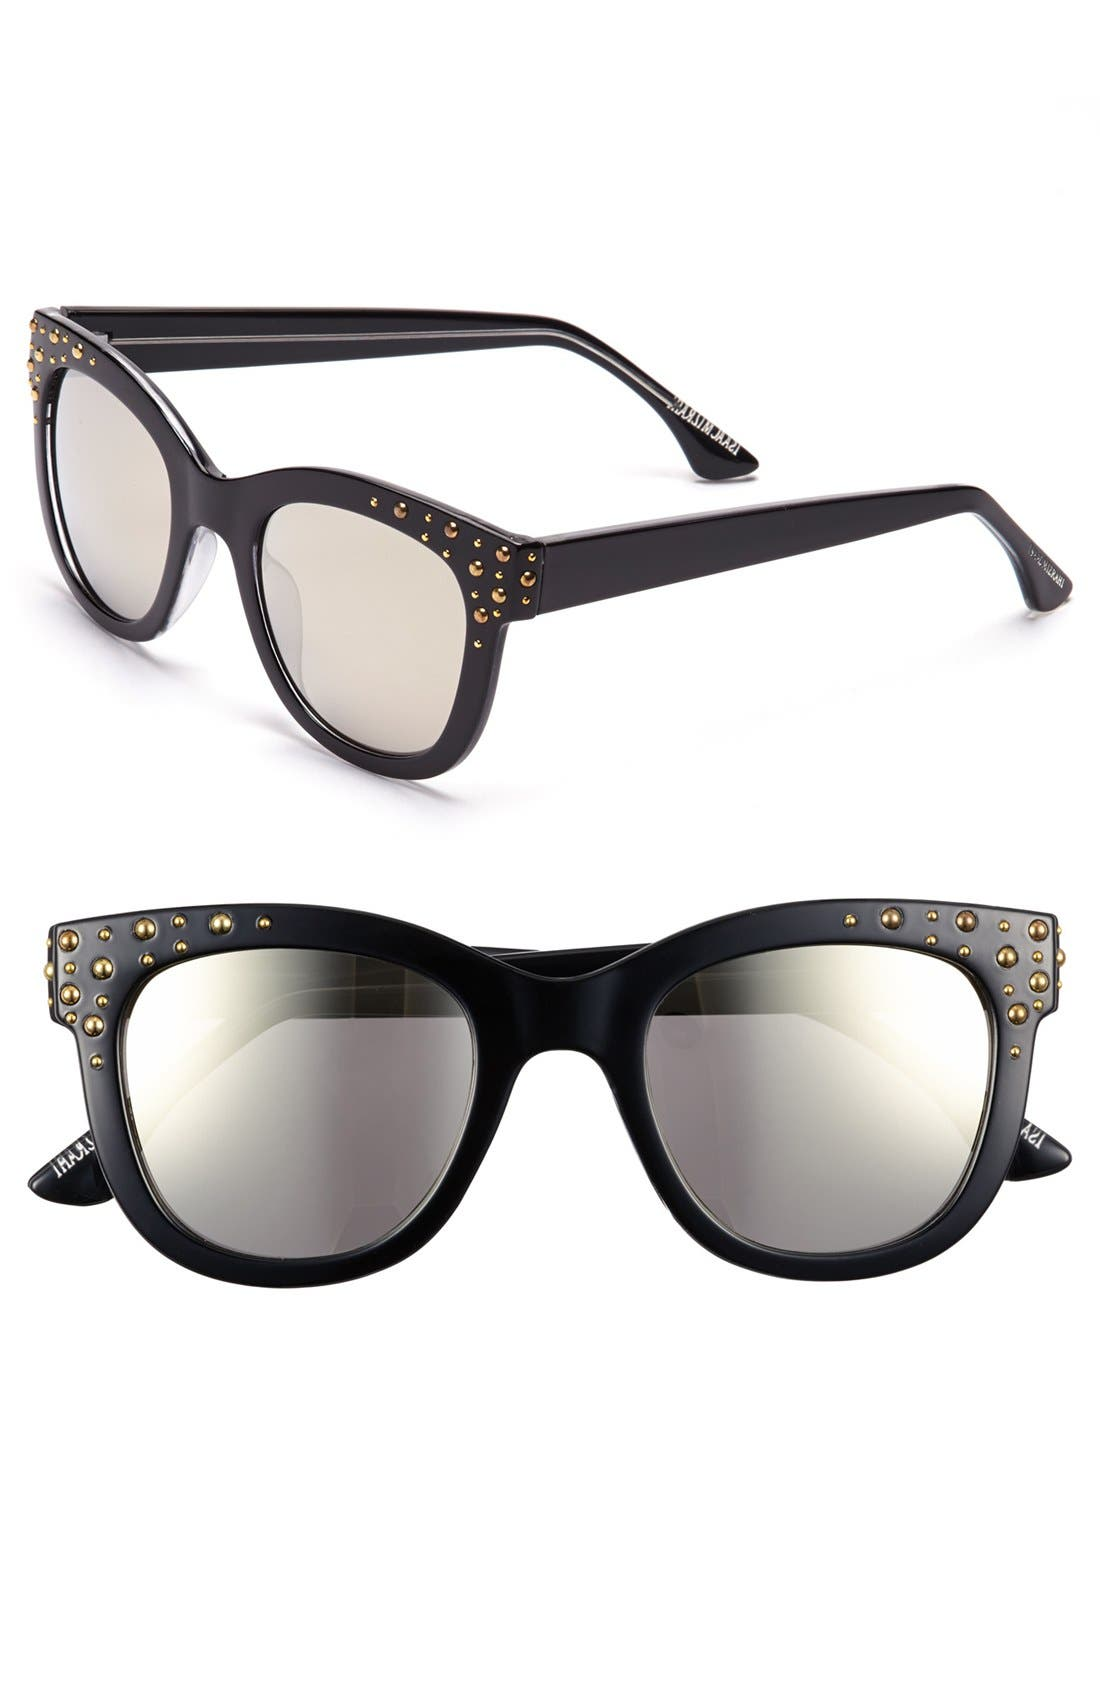 Main Image - Isaac Mizrahi New York 52mm Retro Sunglasses